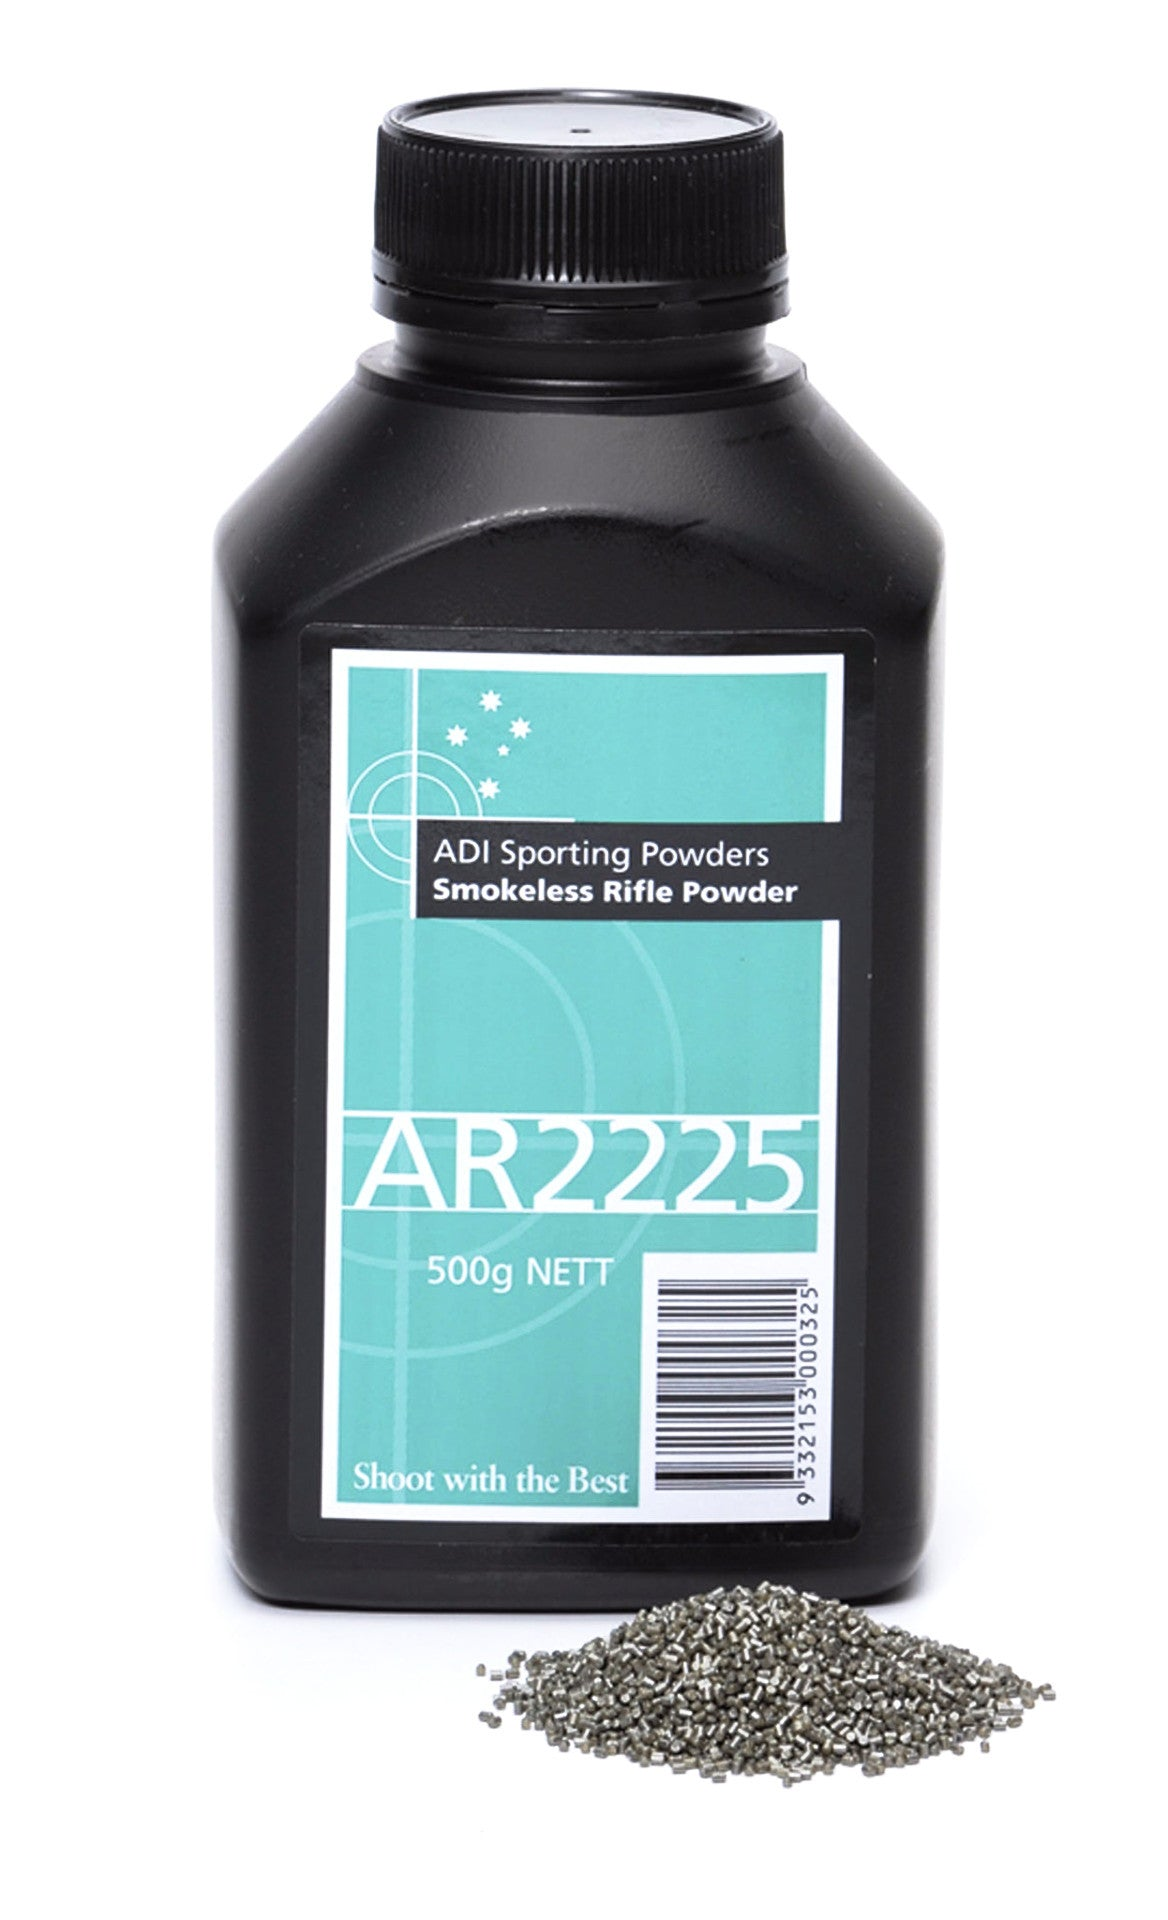 ADI Sporting Powders AR2225 (500g)